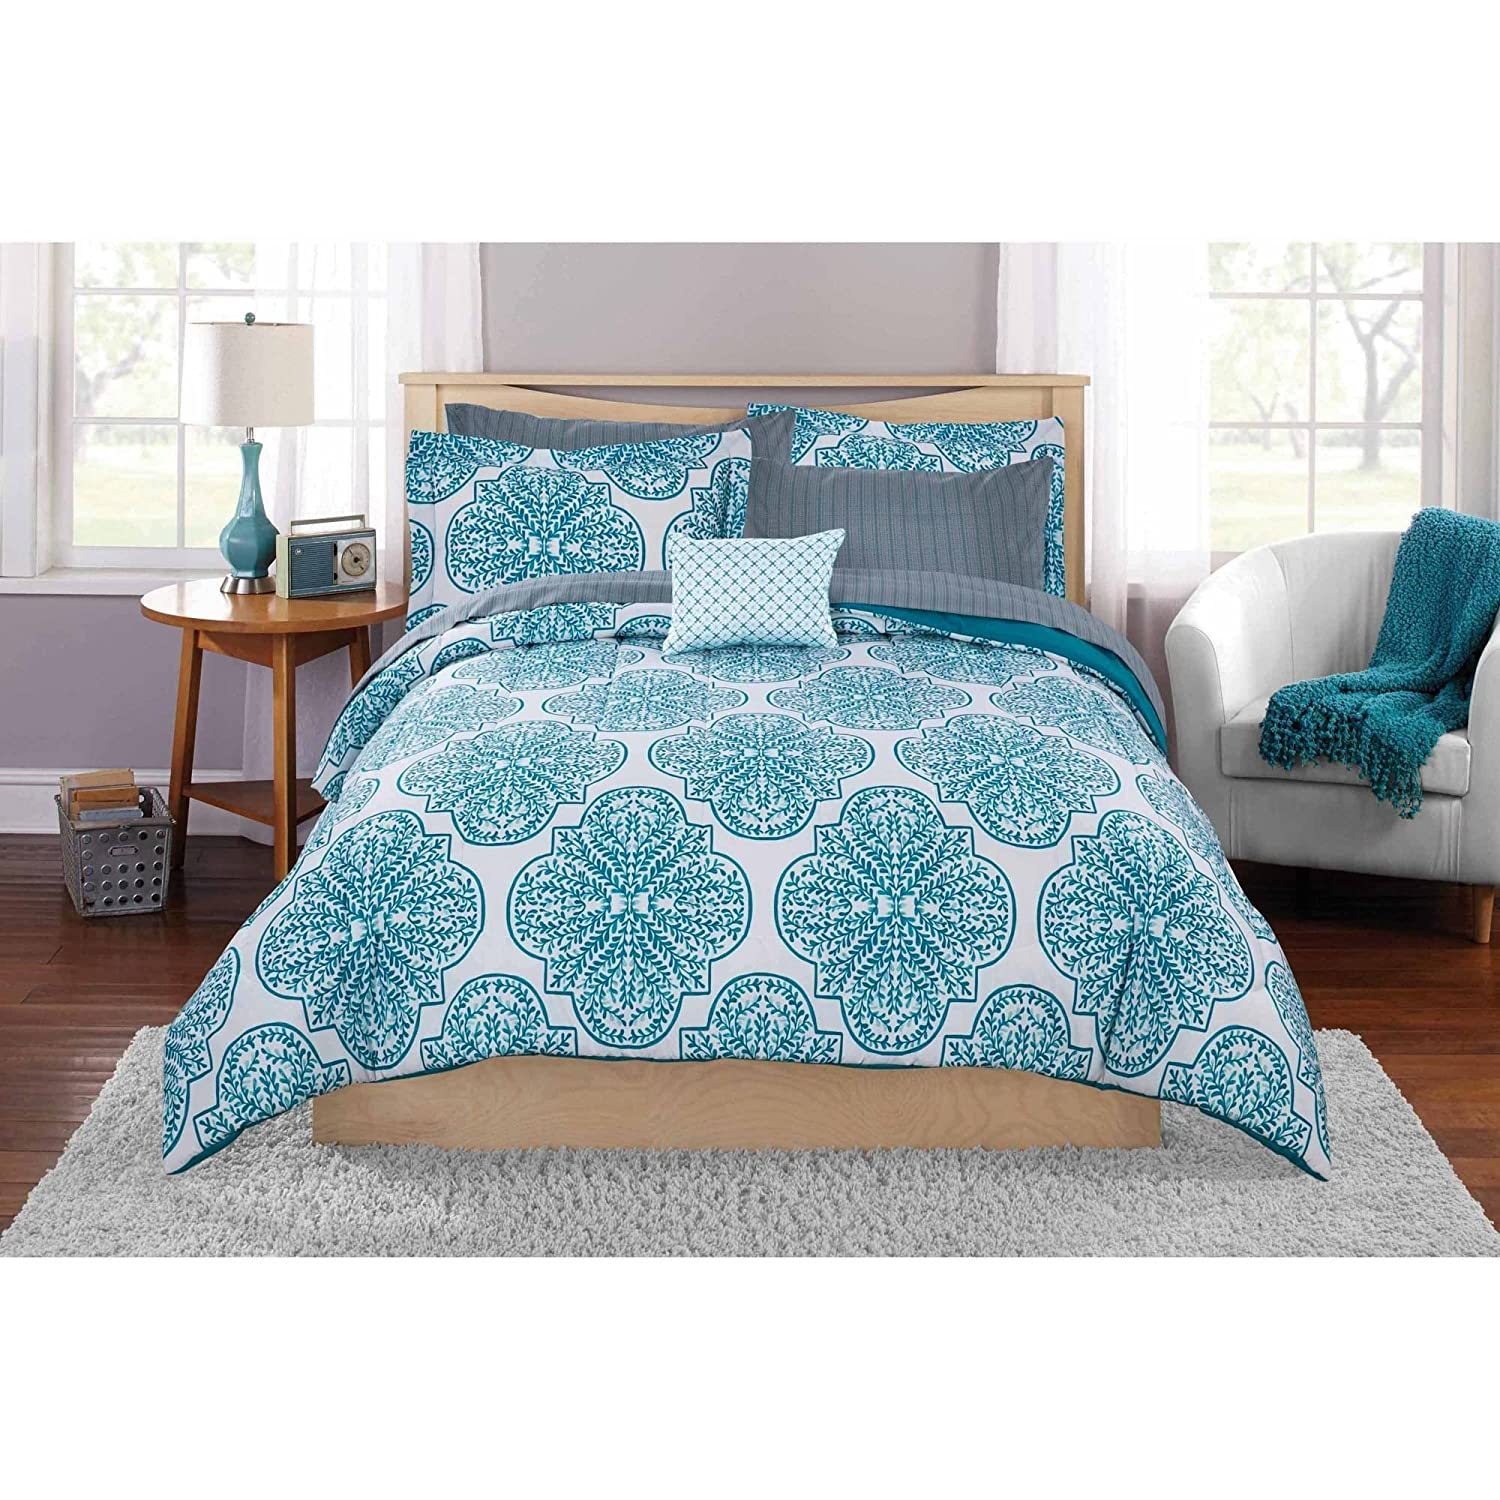 Modern White/Teal Leaf Design Bed in a Bag Bedding Set King